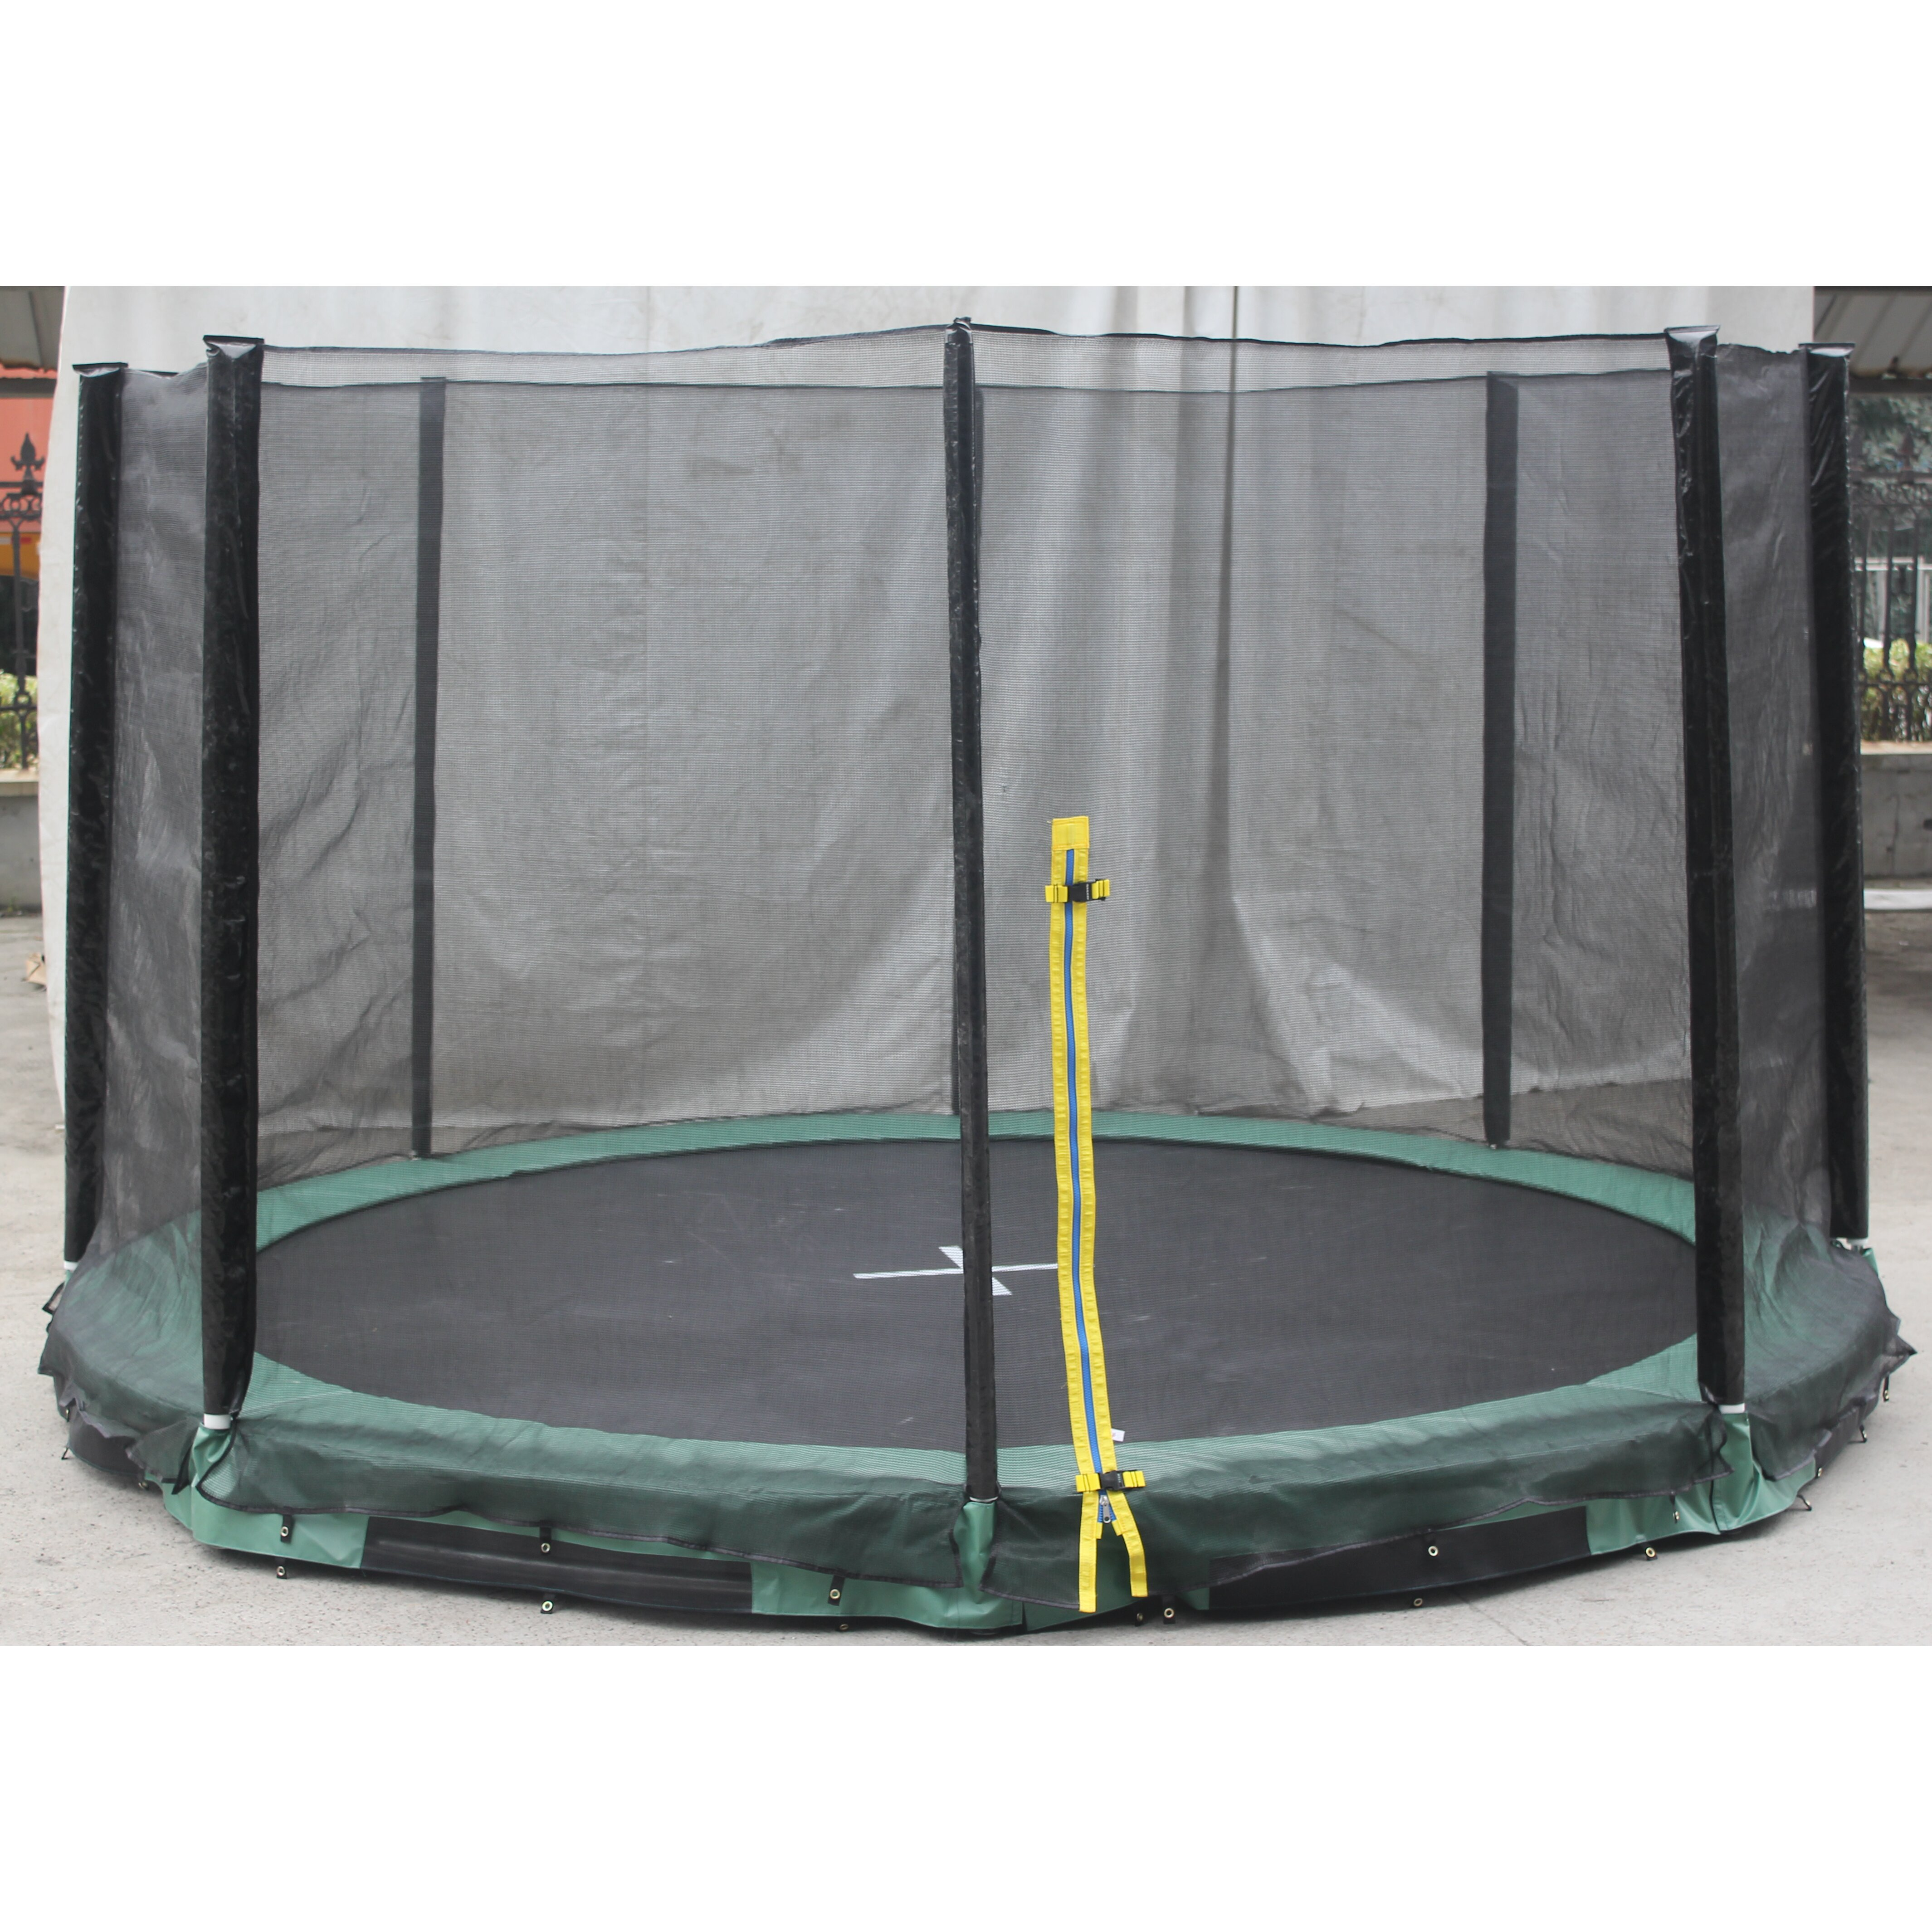 Super Jumper Inground 14' Round Trampoline With Safety